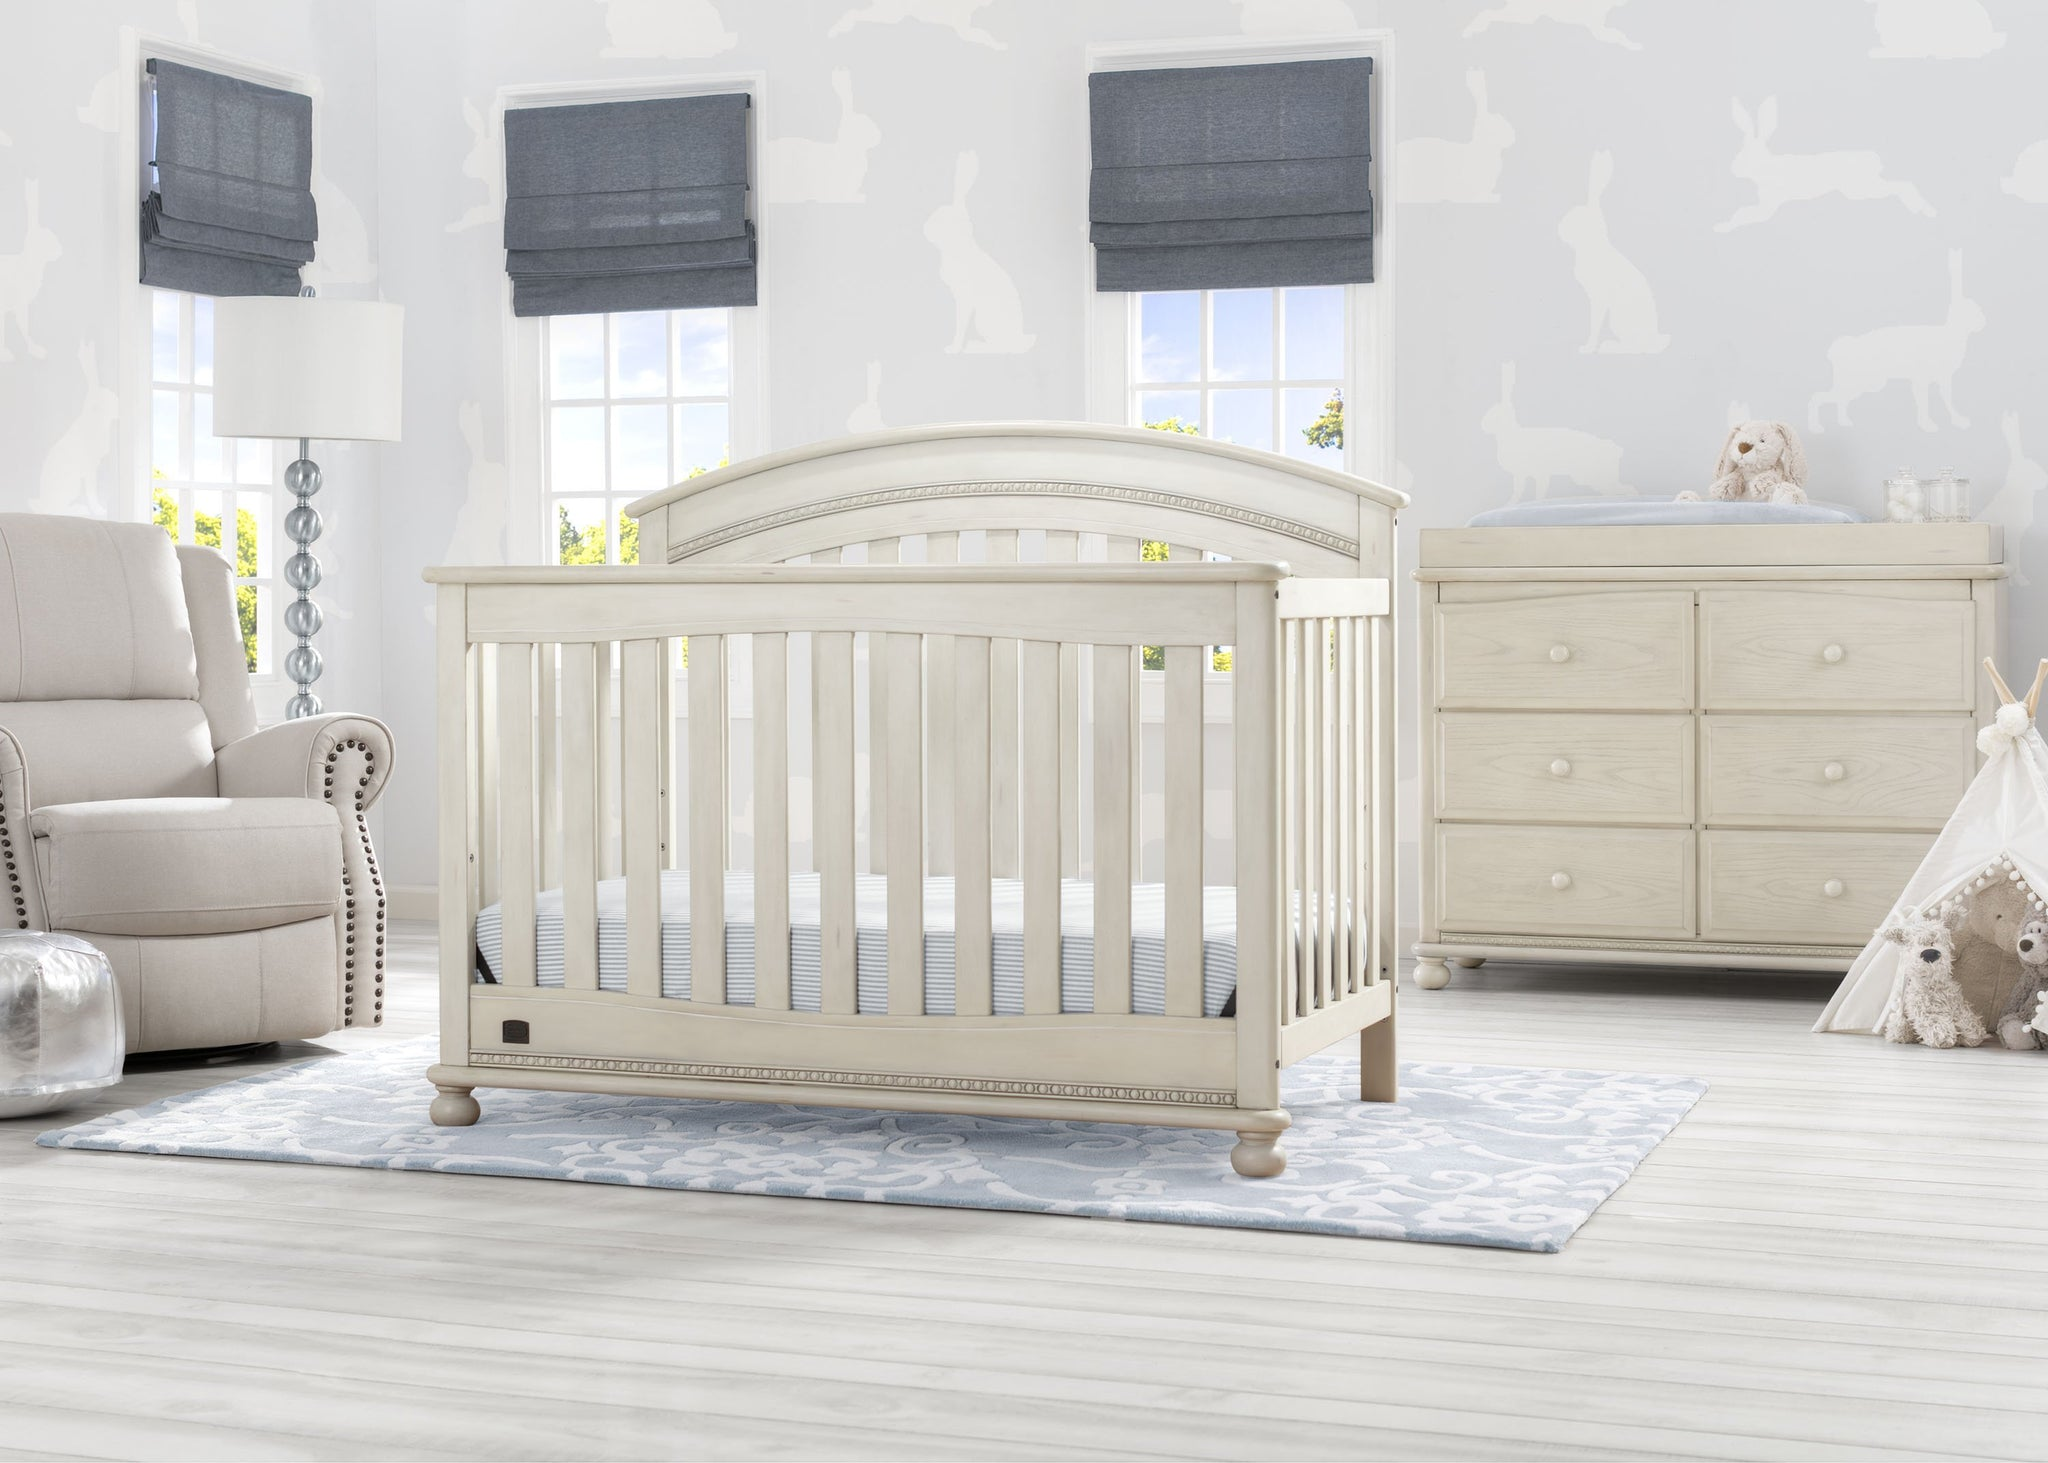 Delta Children Antique White (122) Aden 4-in-1 Convertible Crib (W337550) Room View, a1a